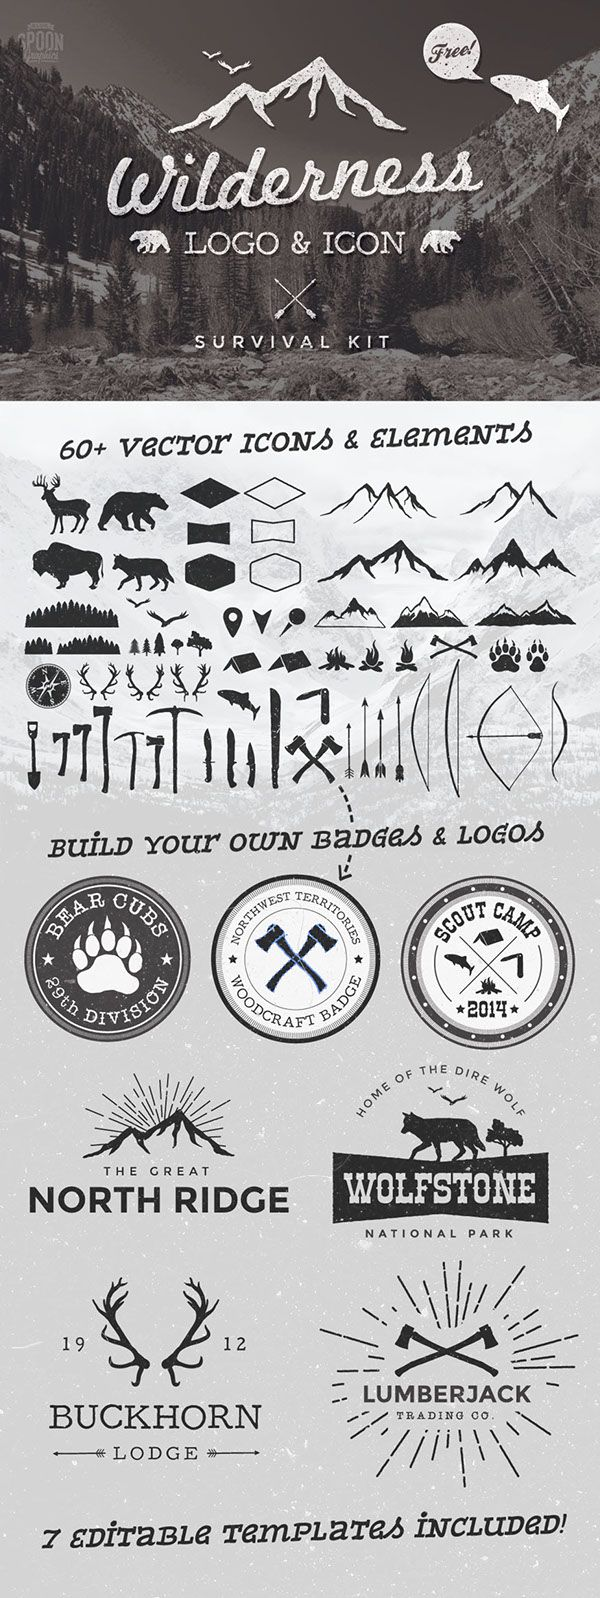 create my own logo free download